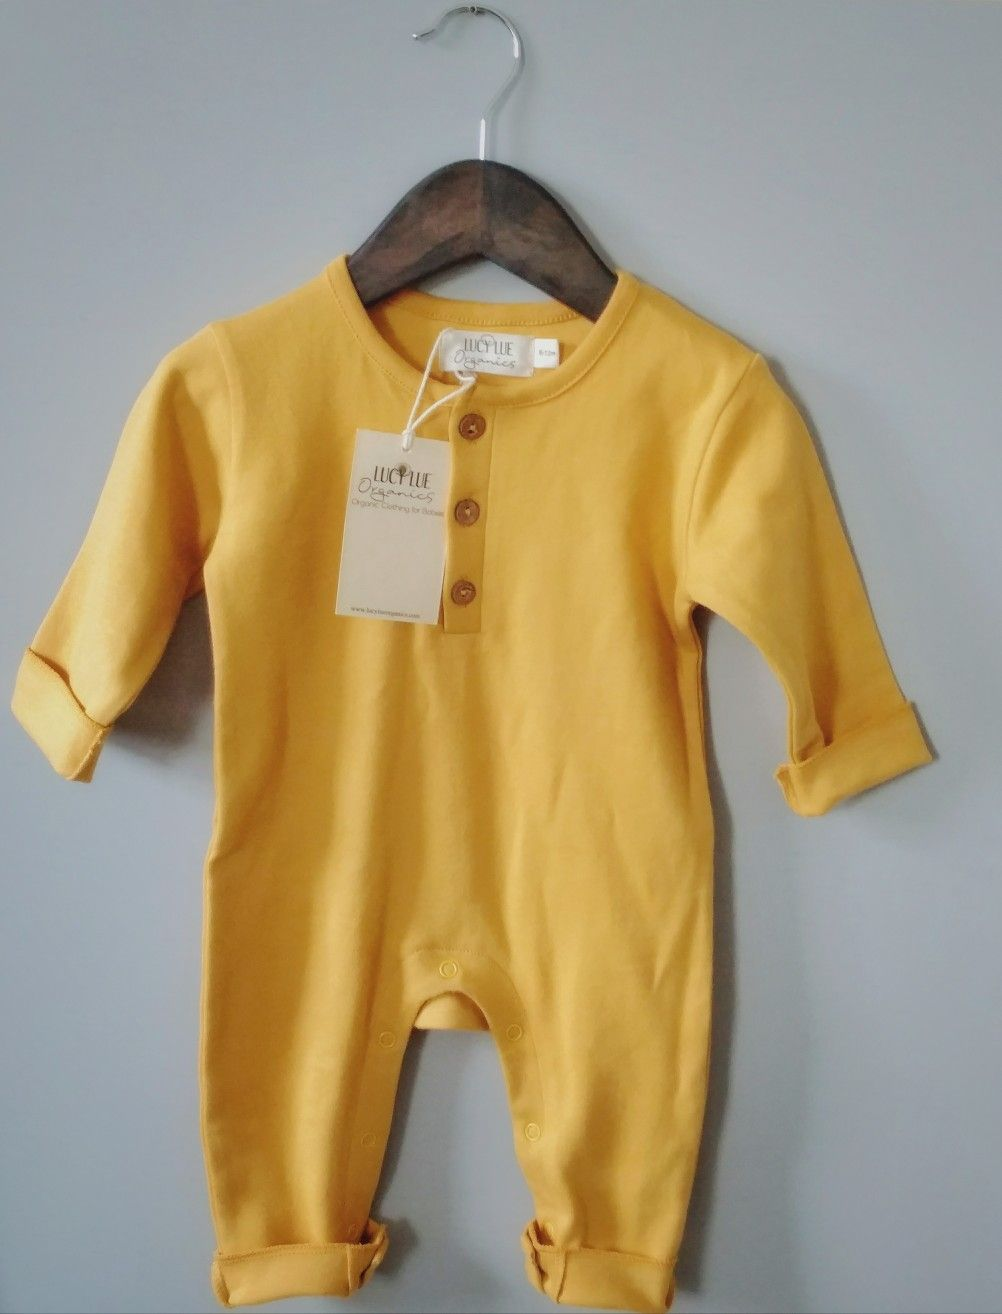 c141b2146 100% organic cotton romper by Lucy Lue Organics. Made of the softest ...